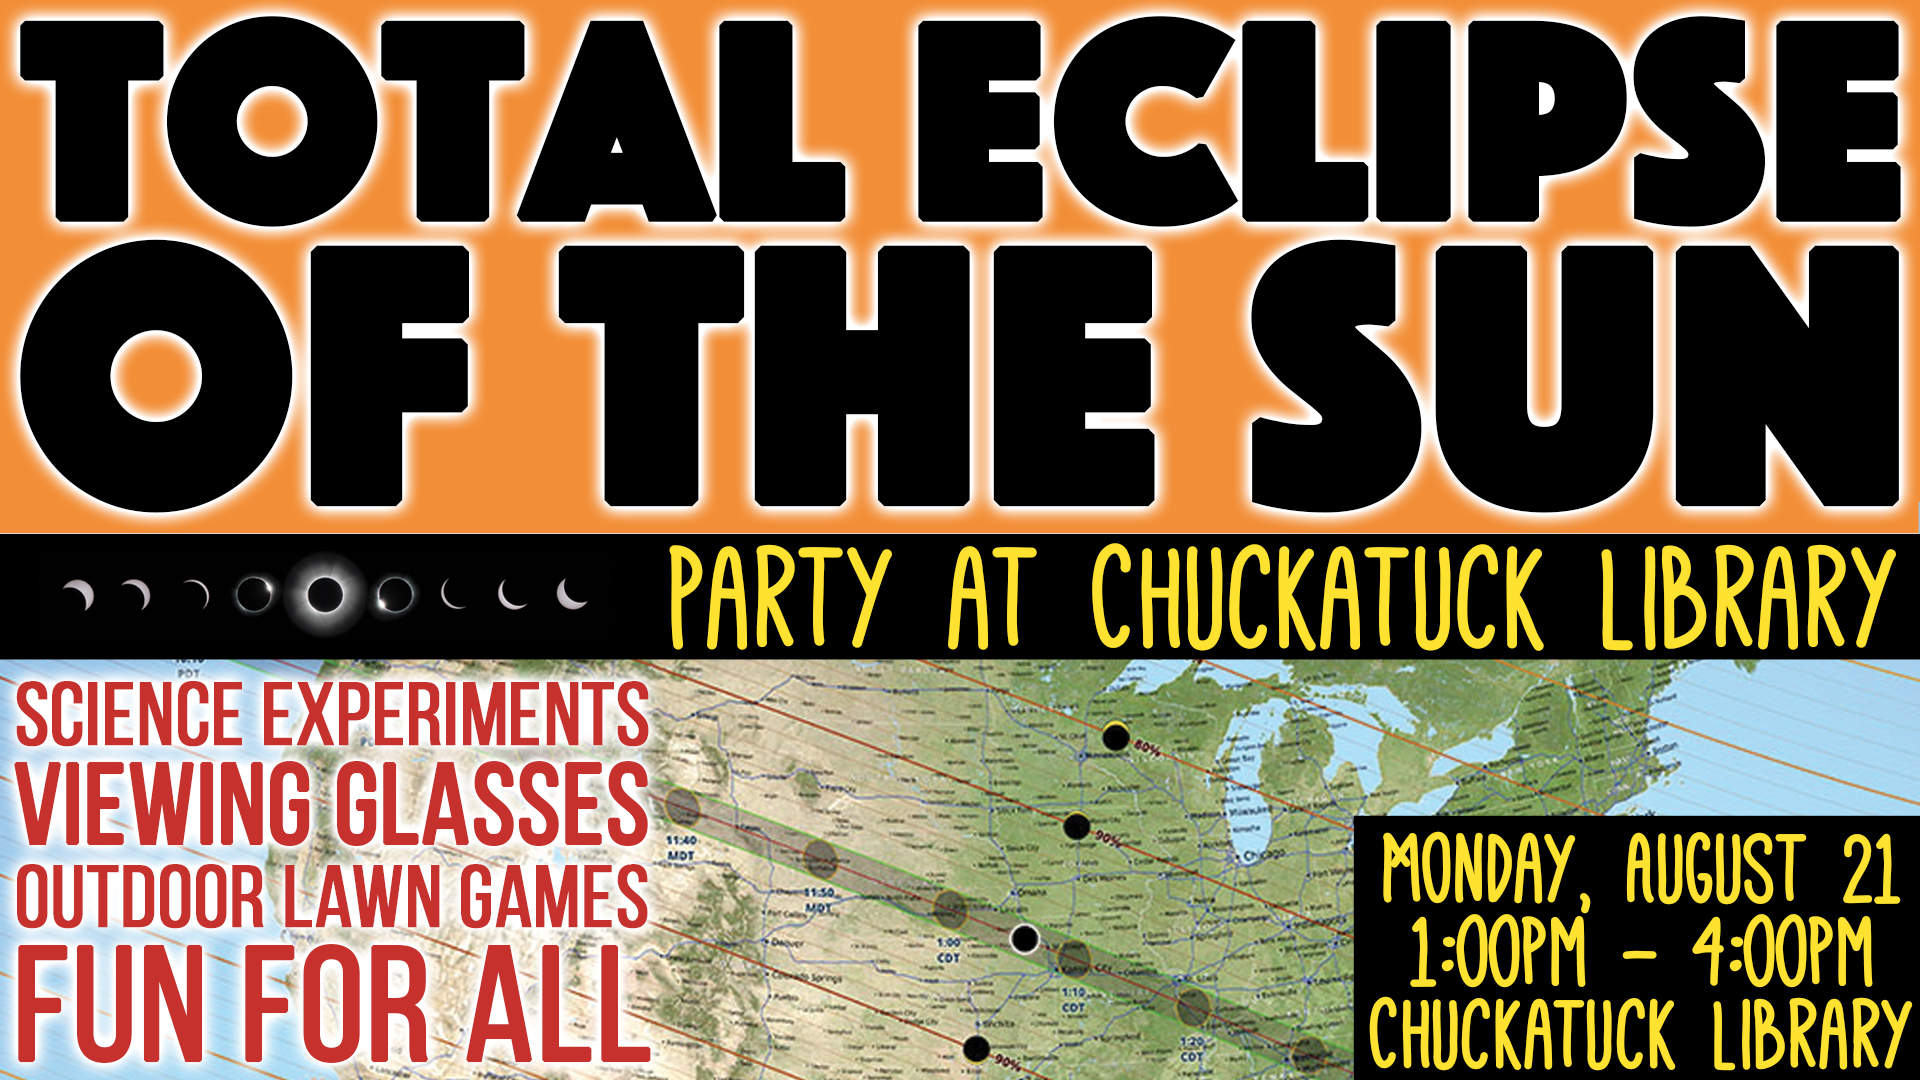 Total Eclipse of the Sun Party